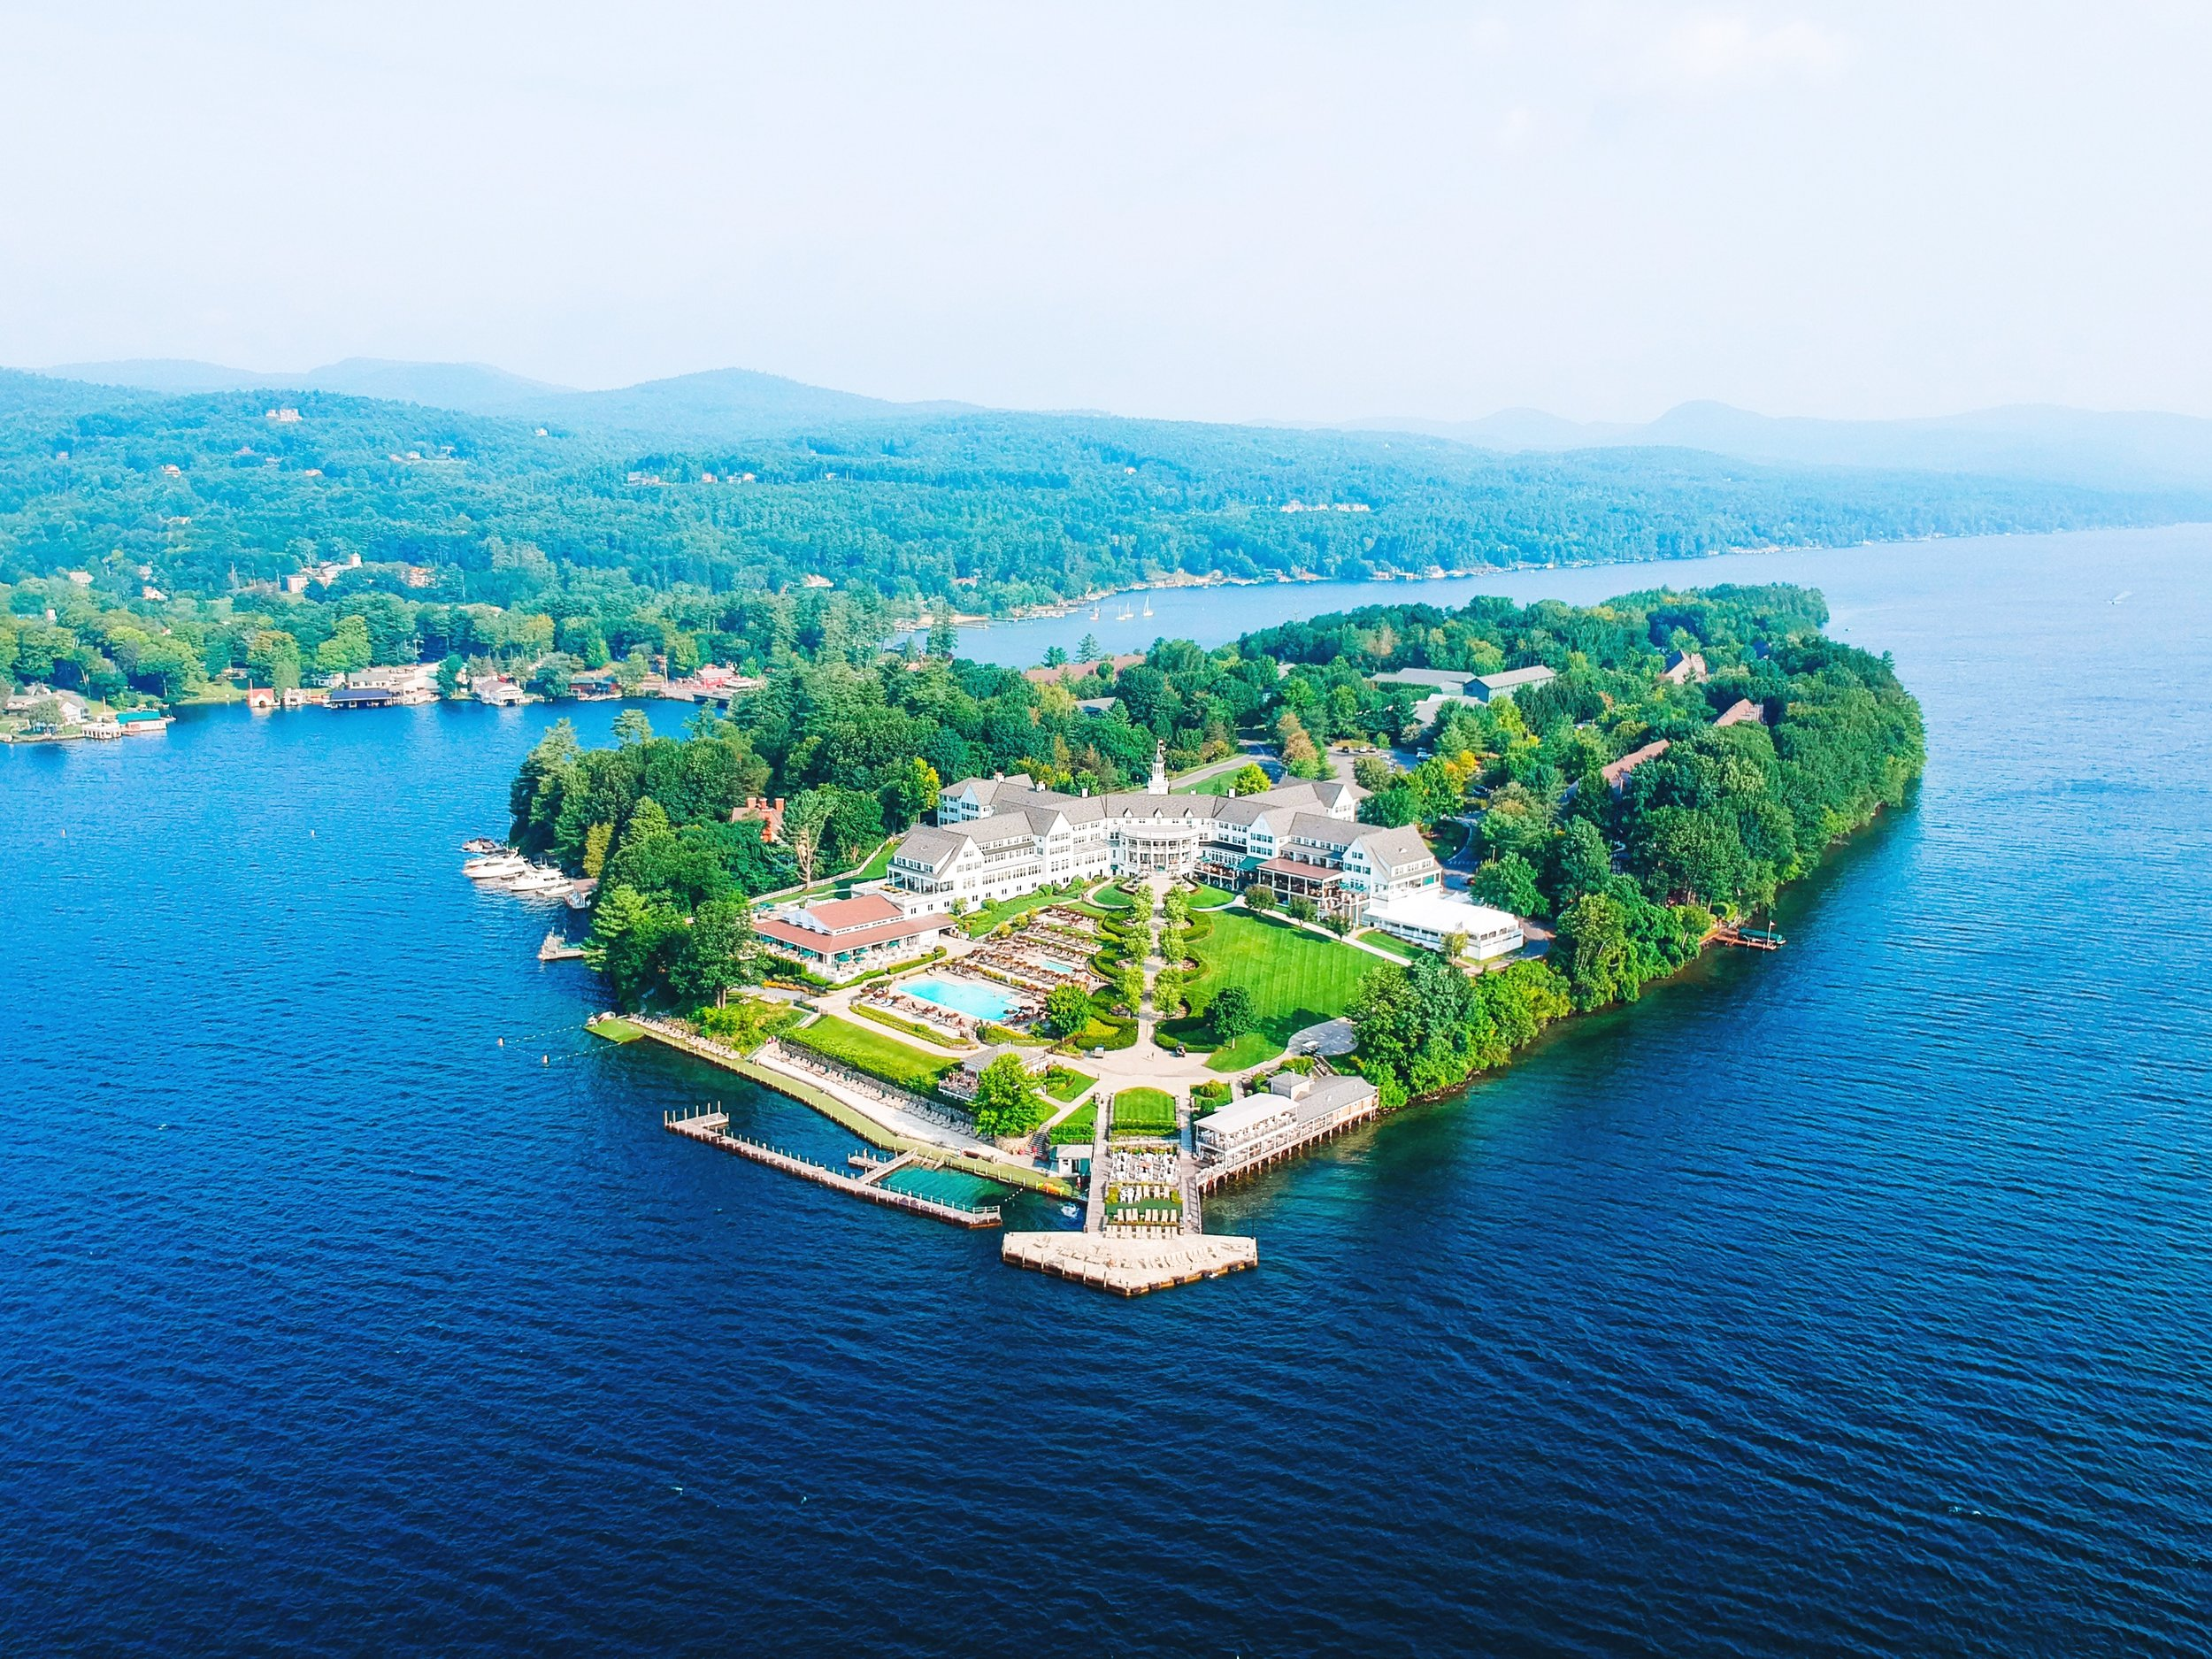 Things to do in Lake George, NY. Drone photo of the Sagamore, one of the best things to do in Lake George.